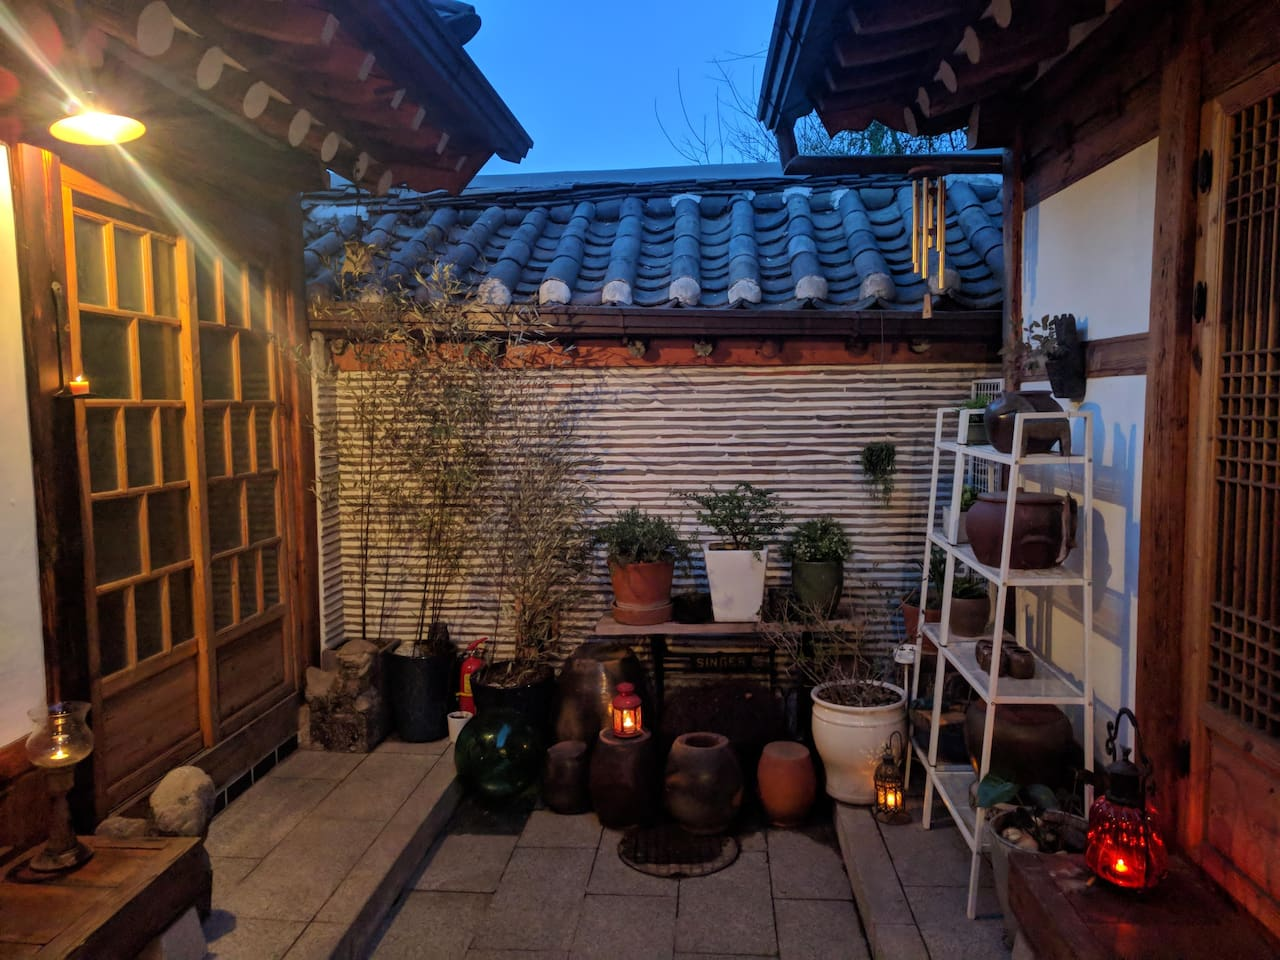 Our courtyard at night